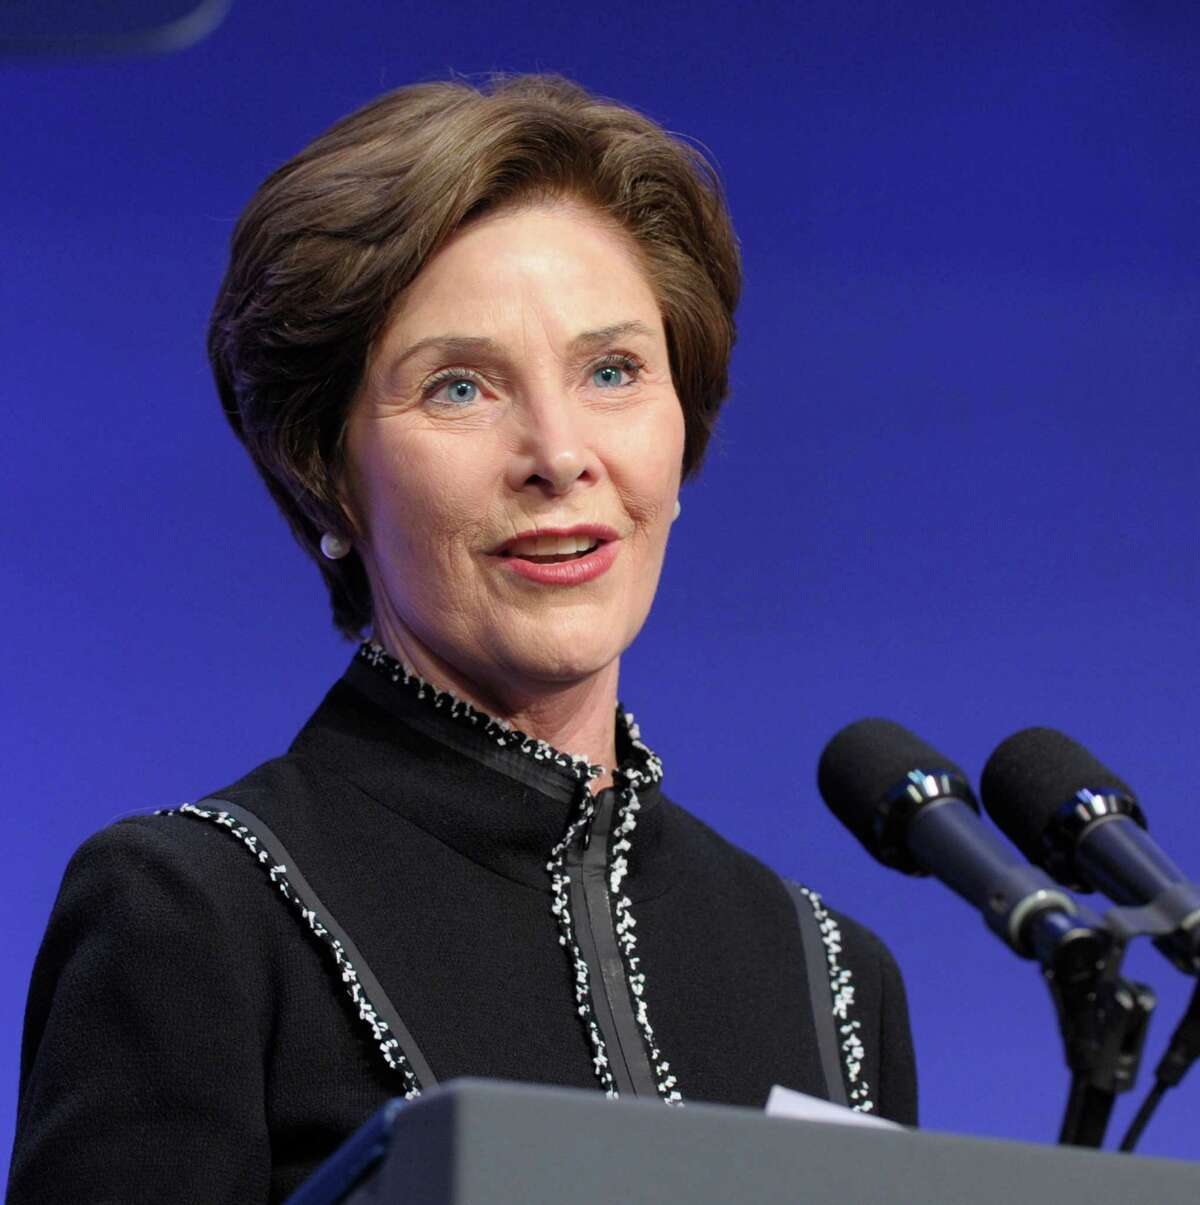 Former first lady Laura Bush: Bush was involved in a fatality car wreck in high school. She ran a stop sign and slammed into another car. The driver of the other vehicle, who happened to be her classmate and friend Michael Dutton Douglas, was killed. Bush wrote about the accident in her memoir